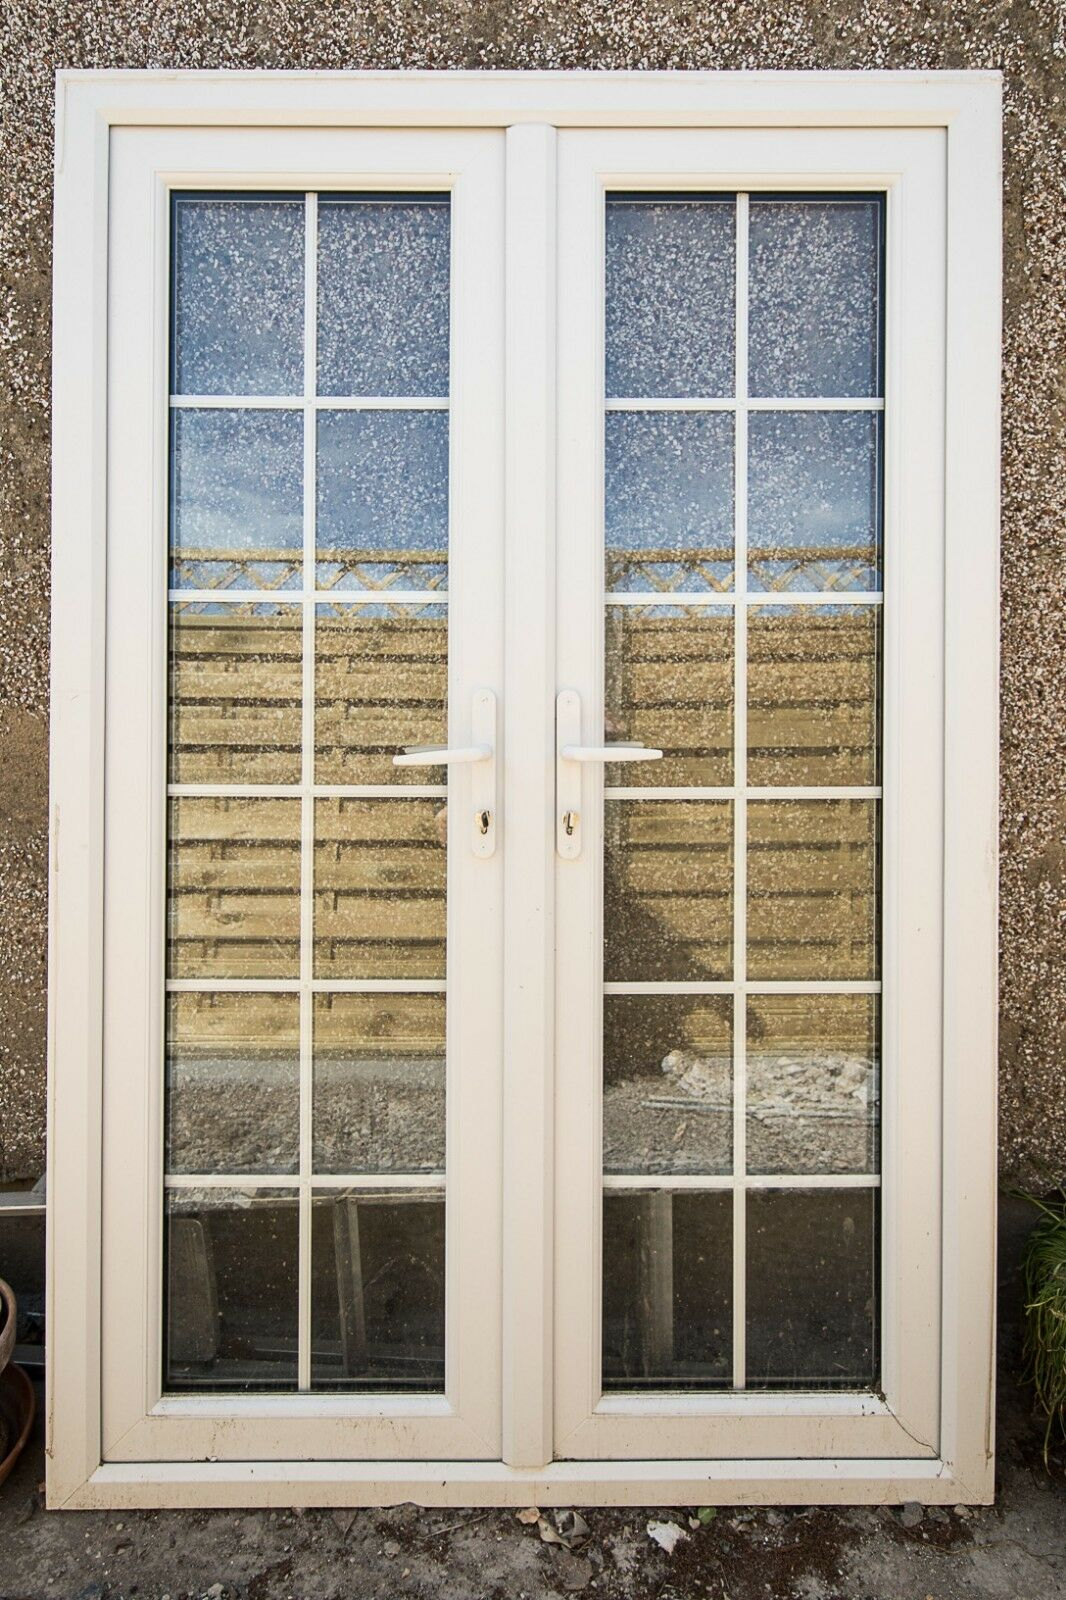 UPVC Double Glazed French Doors   Patio Doors   Used 1 Of 1 See More